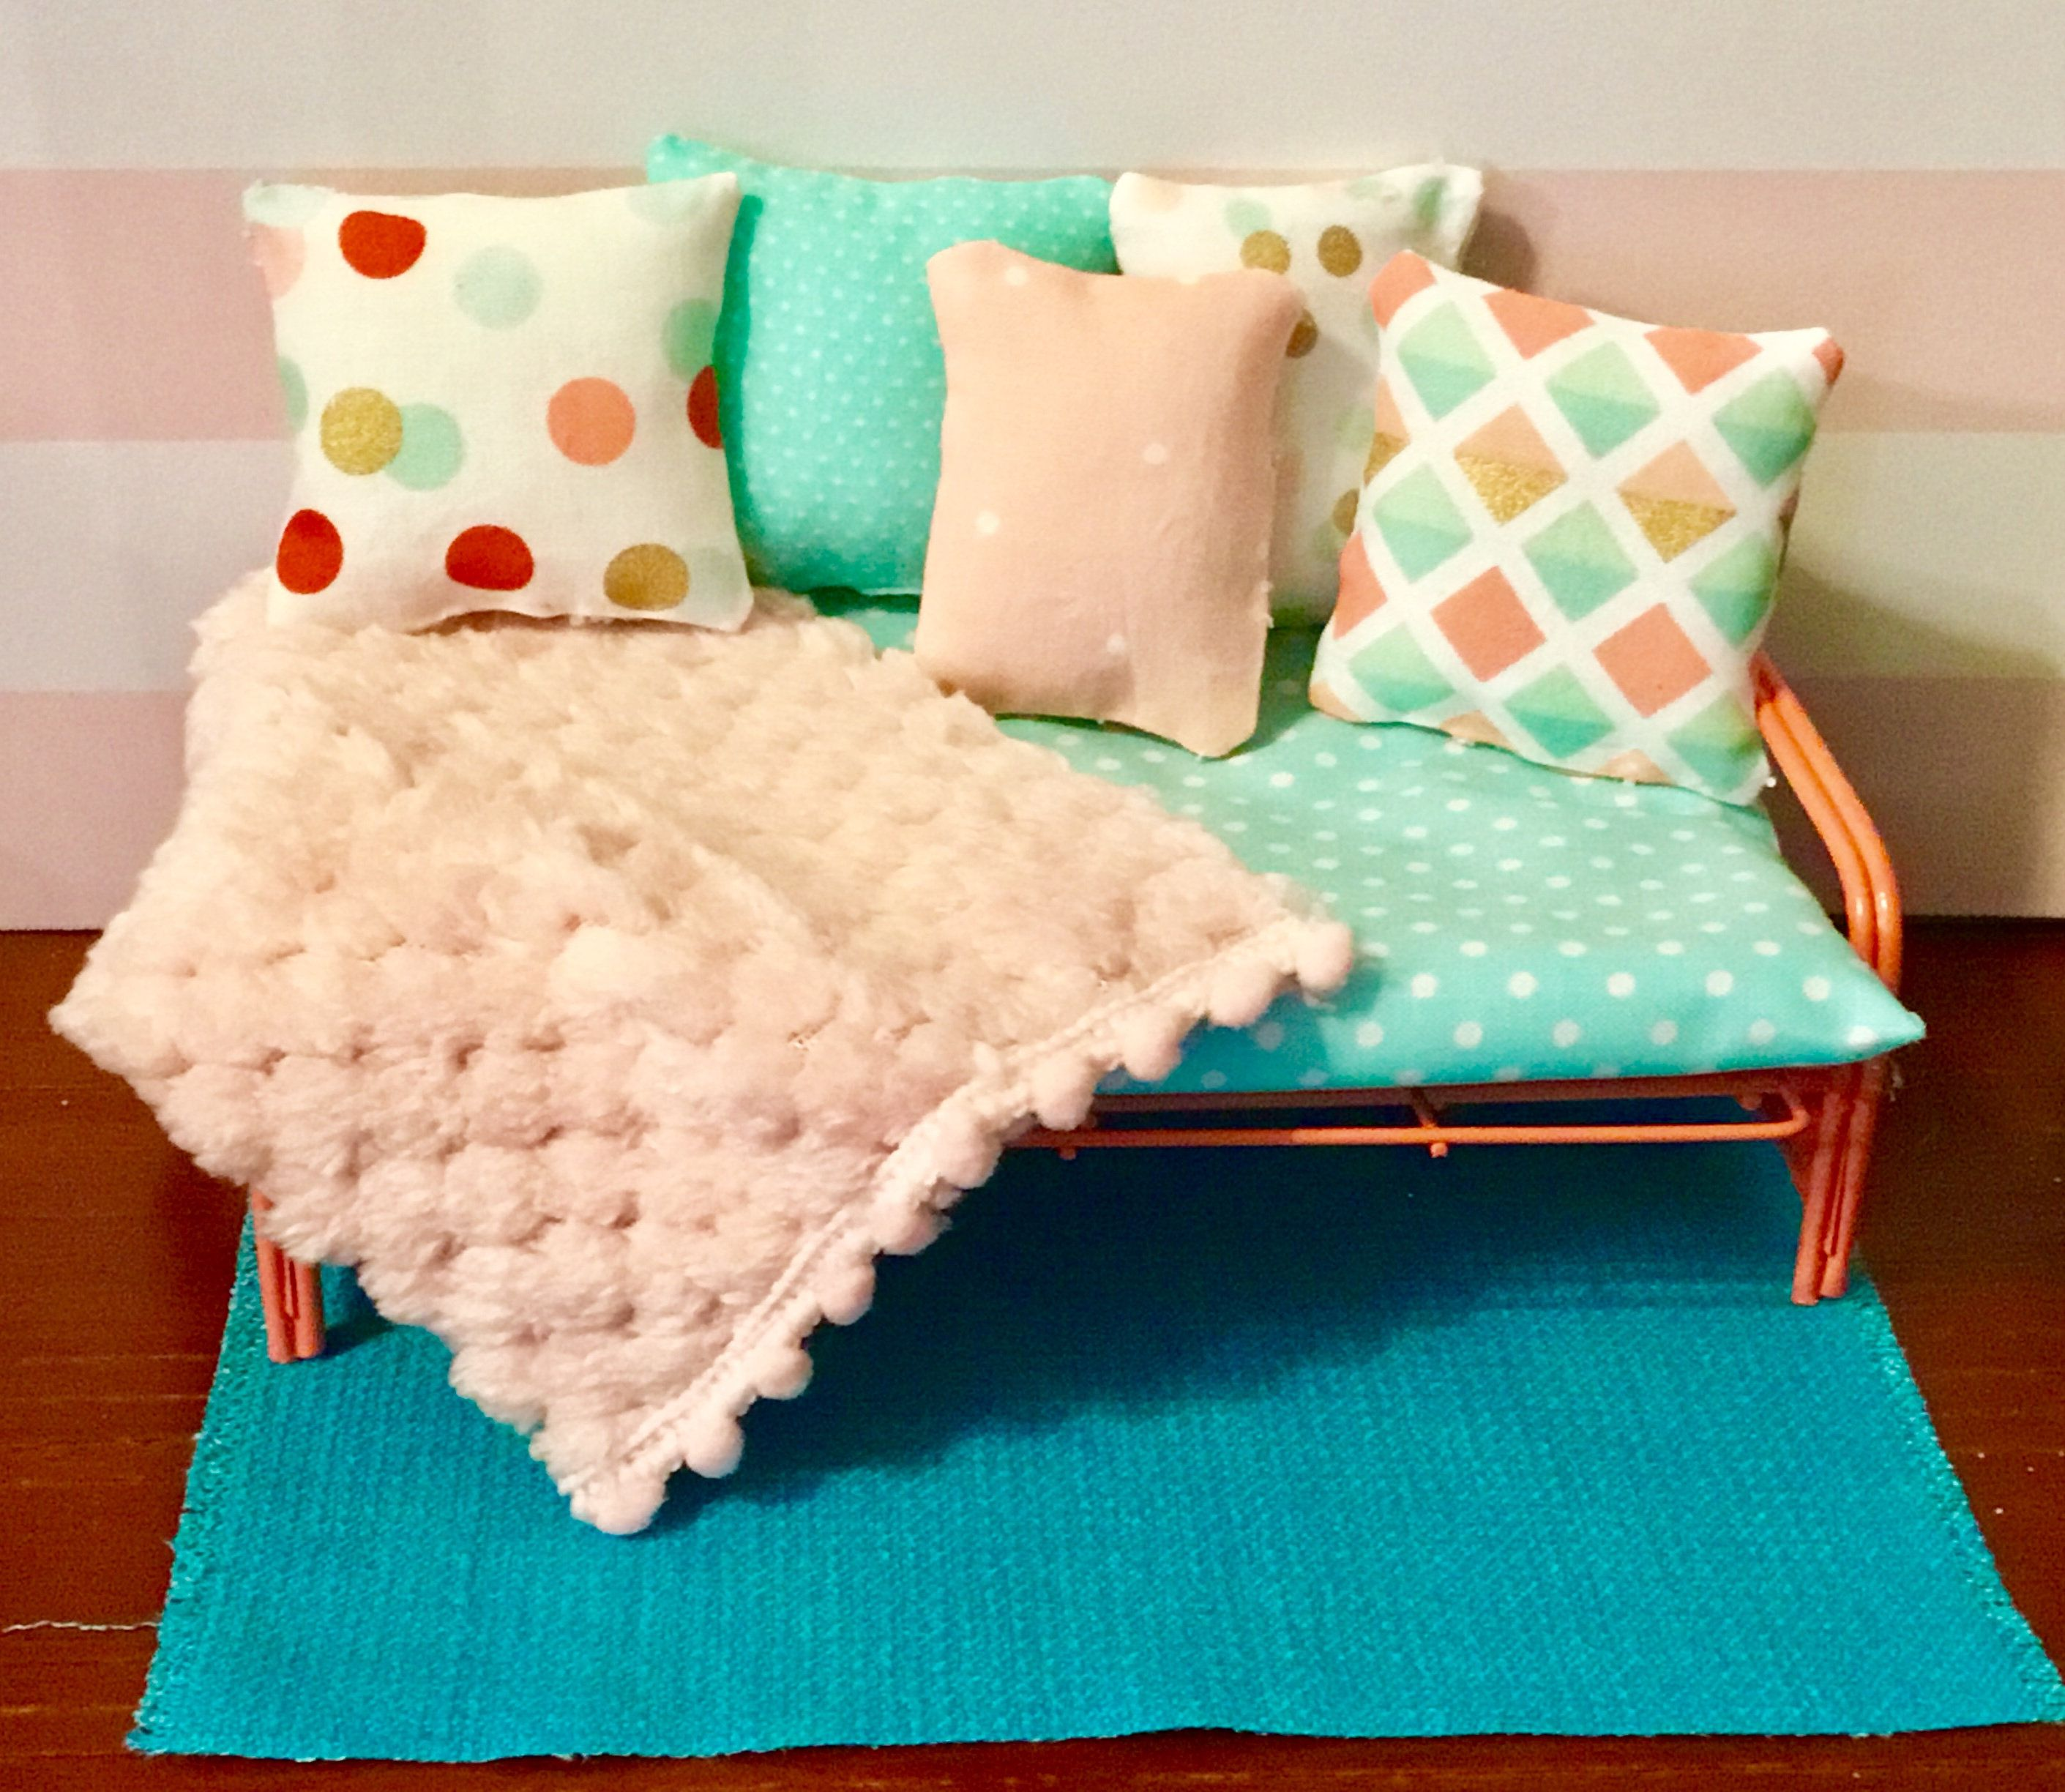 Dollhouse Miniature Futon With Blanket Pillows u0026